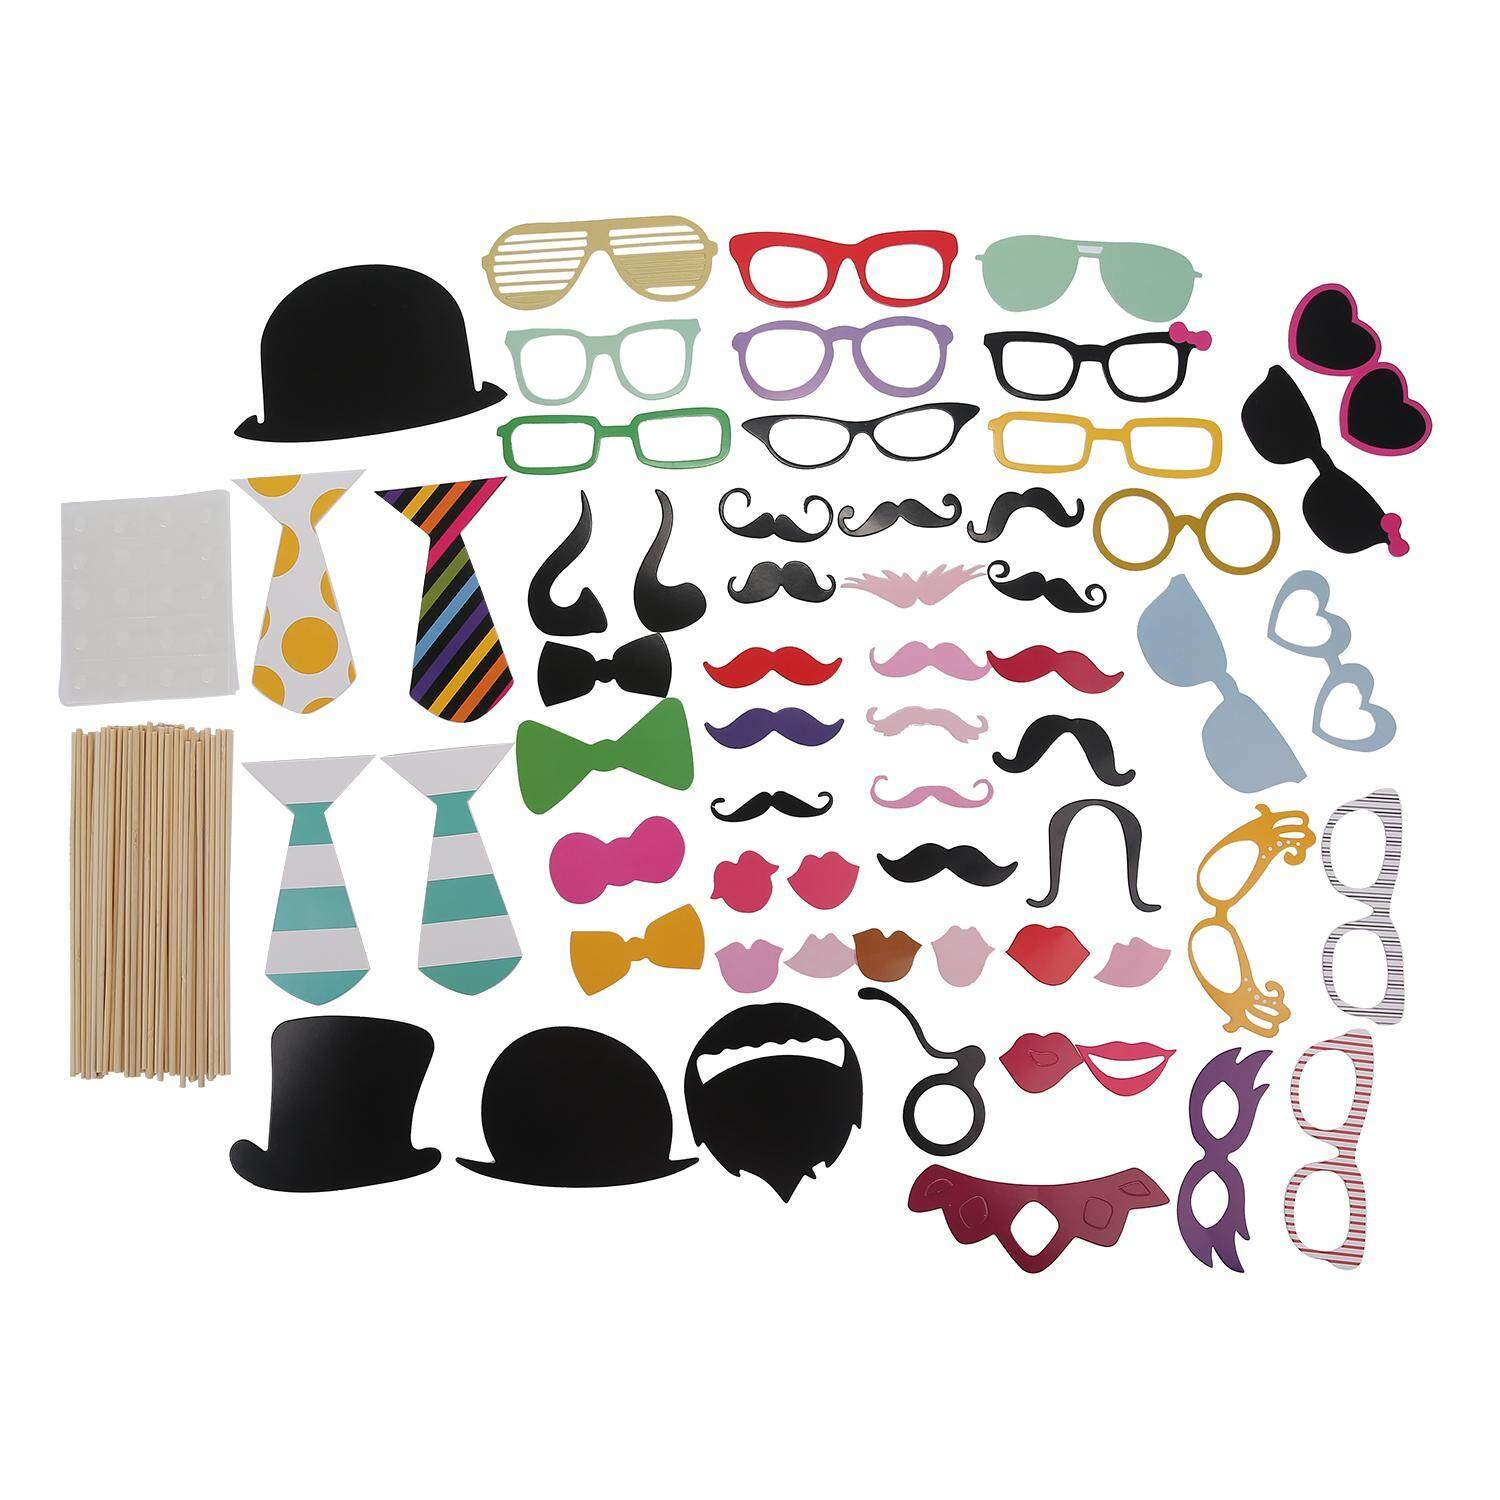 xiuya Photo Booth Props DIY Kit For Halloween Christmas Wedding Birthday Graduation Party,Photobooth Dress-up Accessories Party Favors,58 Set - intl